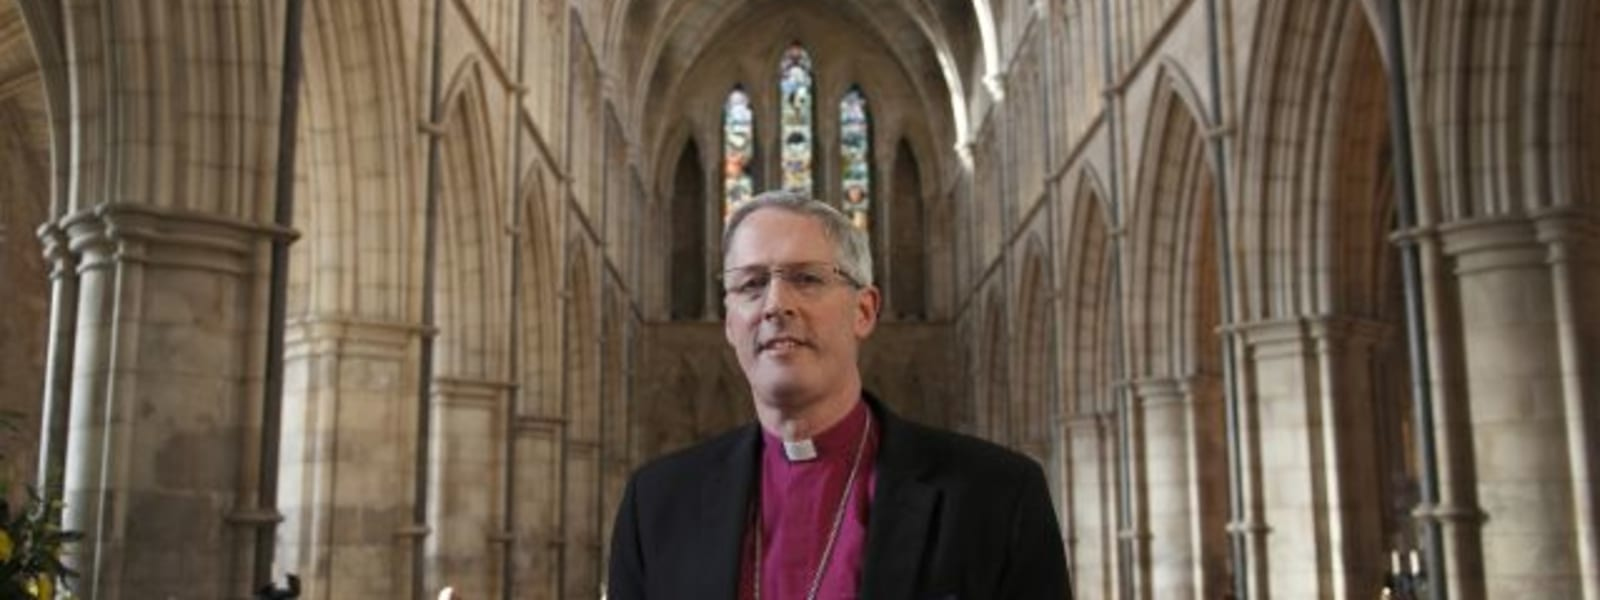 The Rt. Revd. Christopher Chessun, Bishop of Southwark